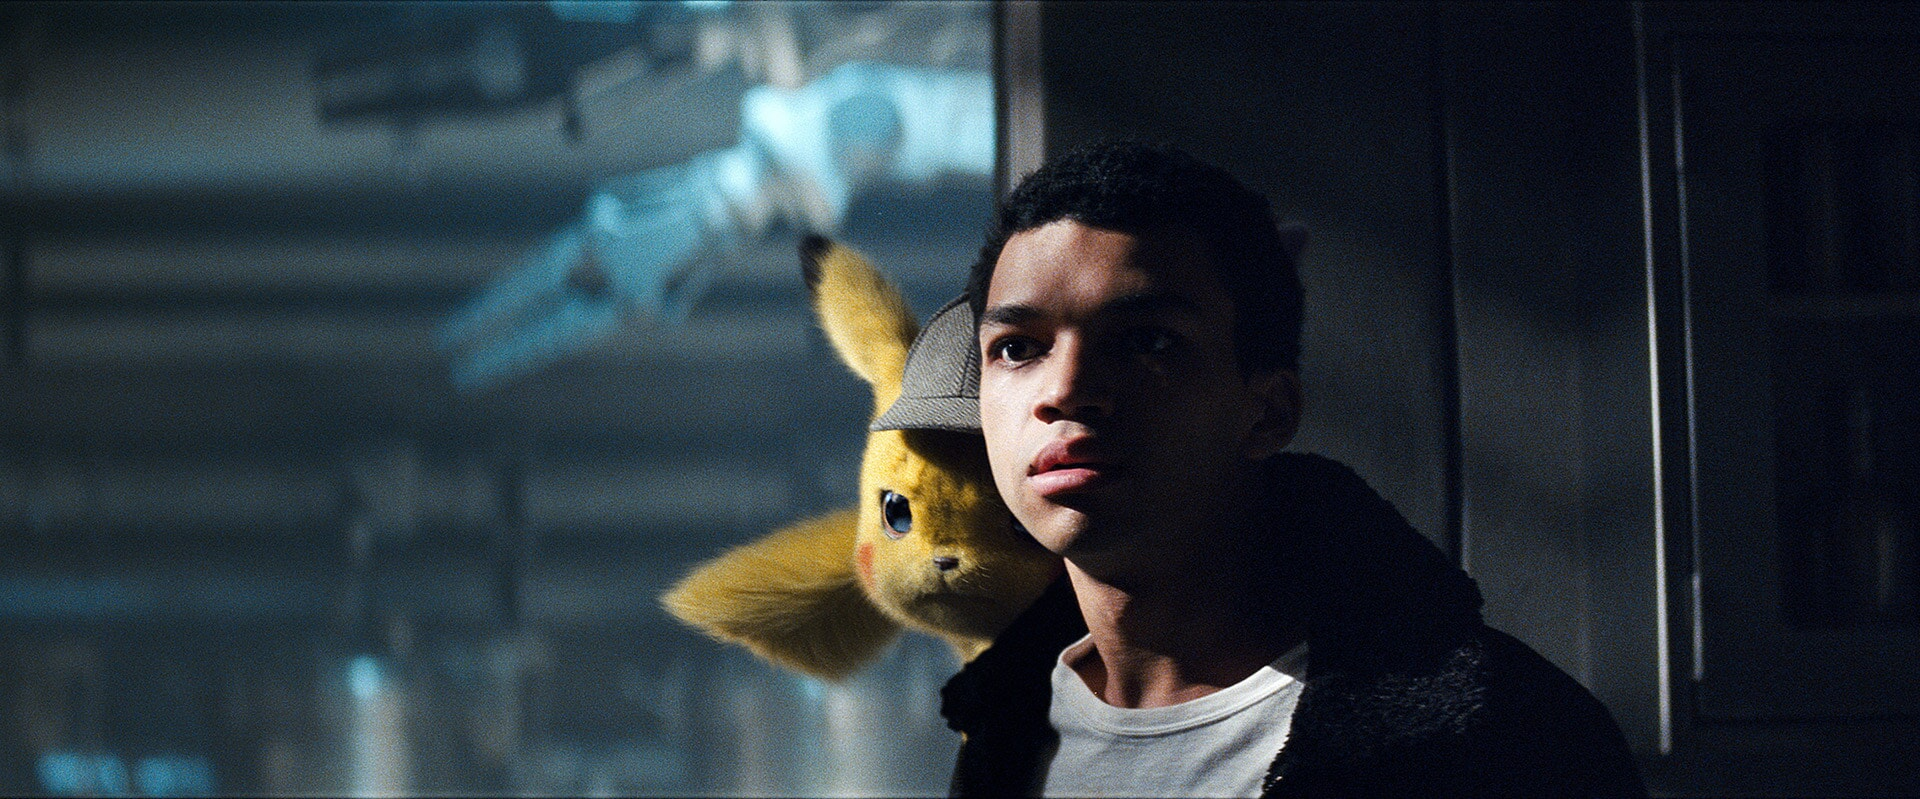 WarnerBros com | Pokémon Detective Pikachu | Movies